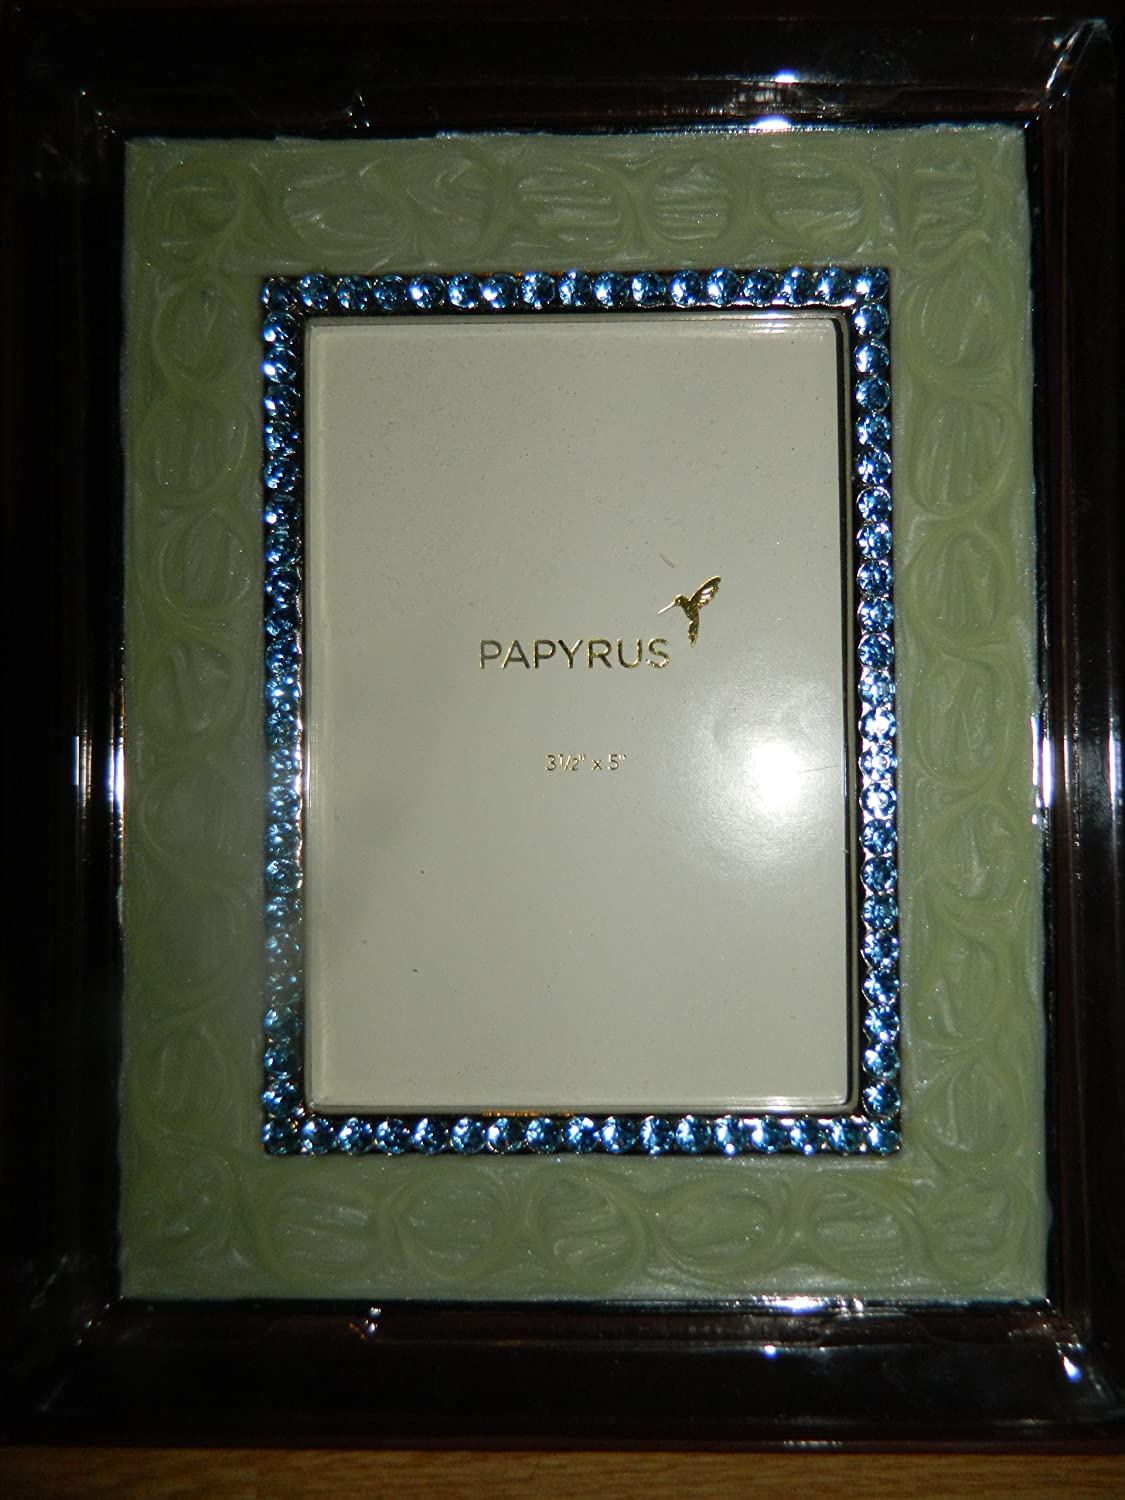 Amazon.com - Papyrus 3.5 x 5 Green with Blue Crystals Single Photo ...